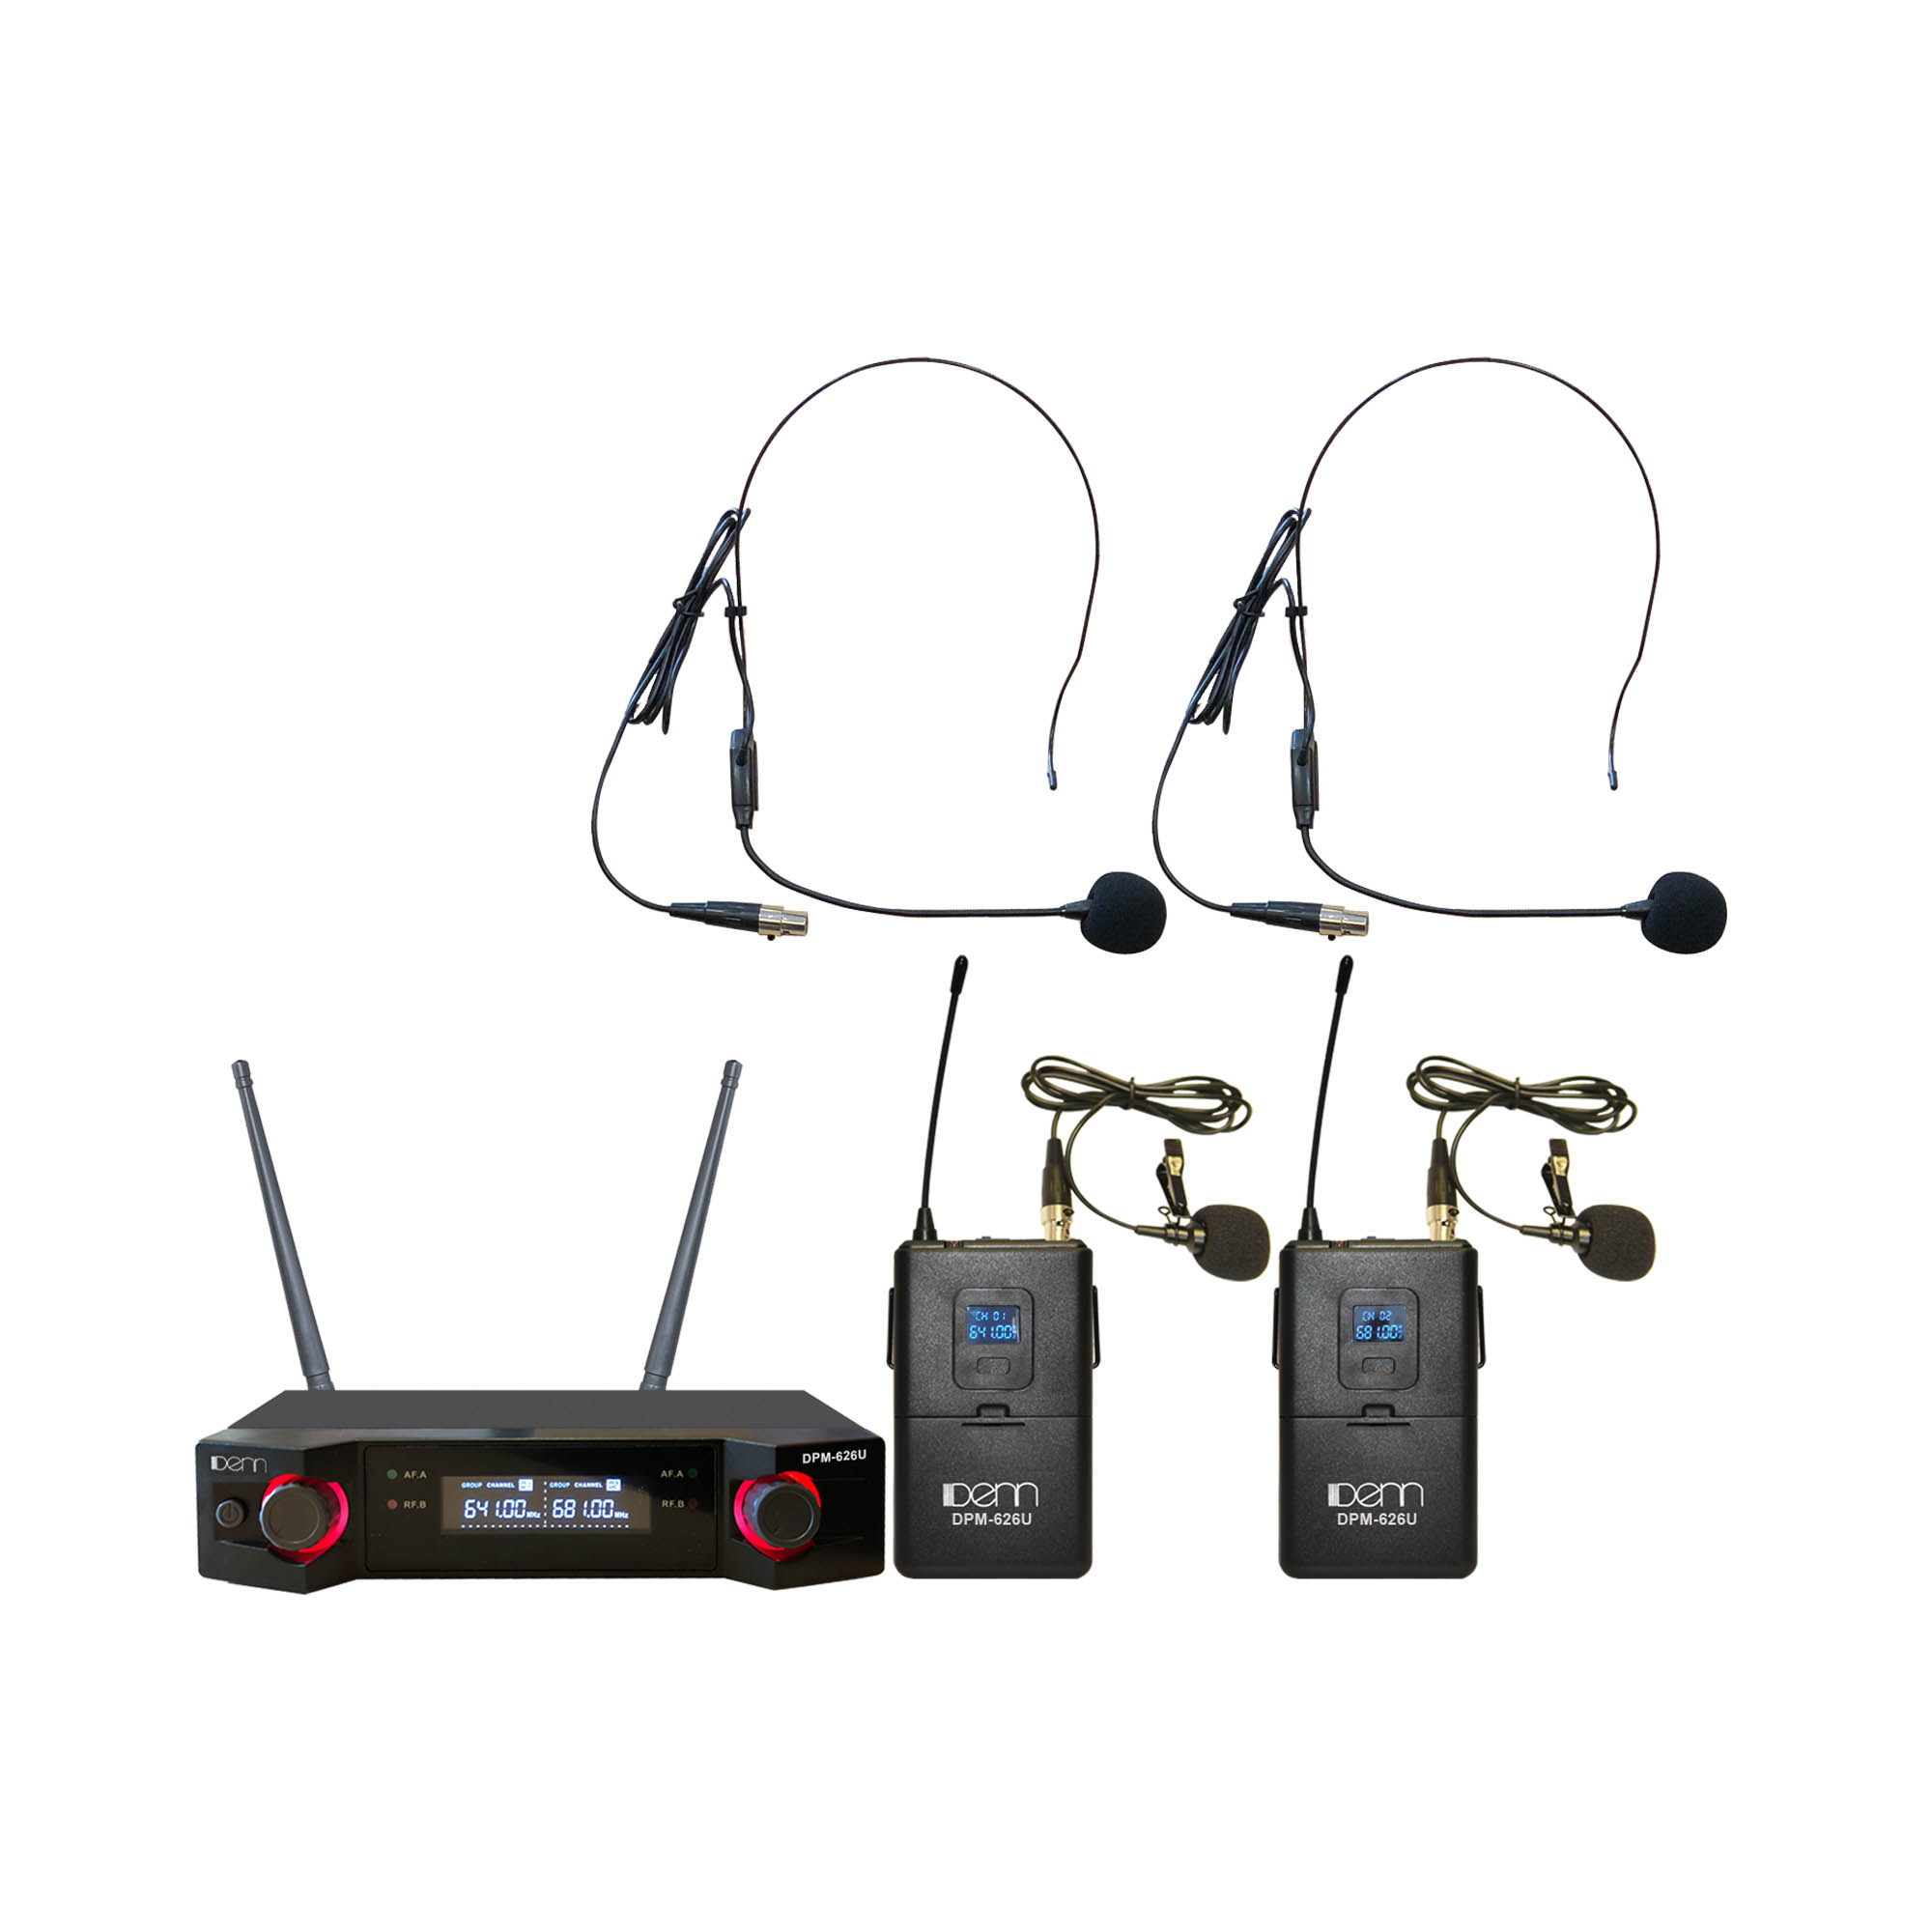 Ultra High Frequency (UHF) Wireless Microphone - Certified by MCMC